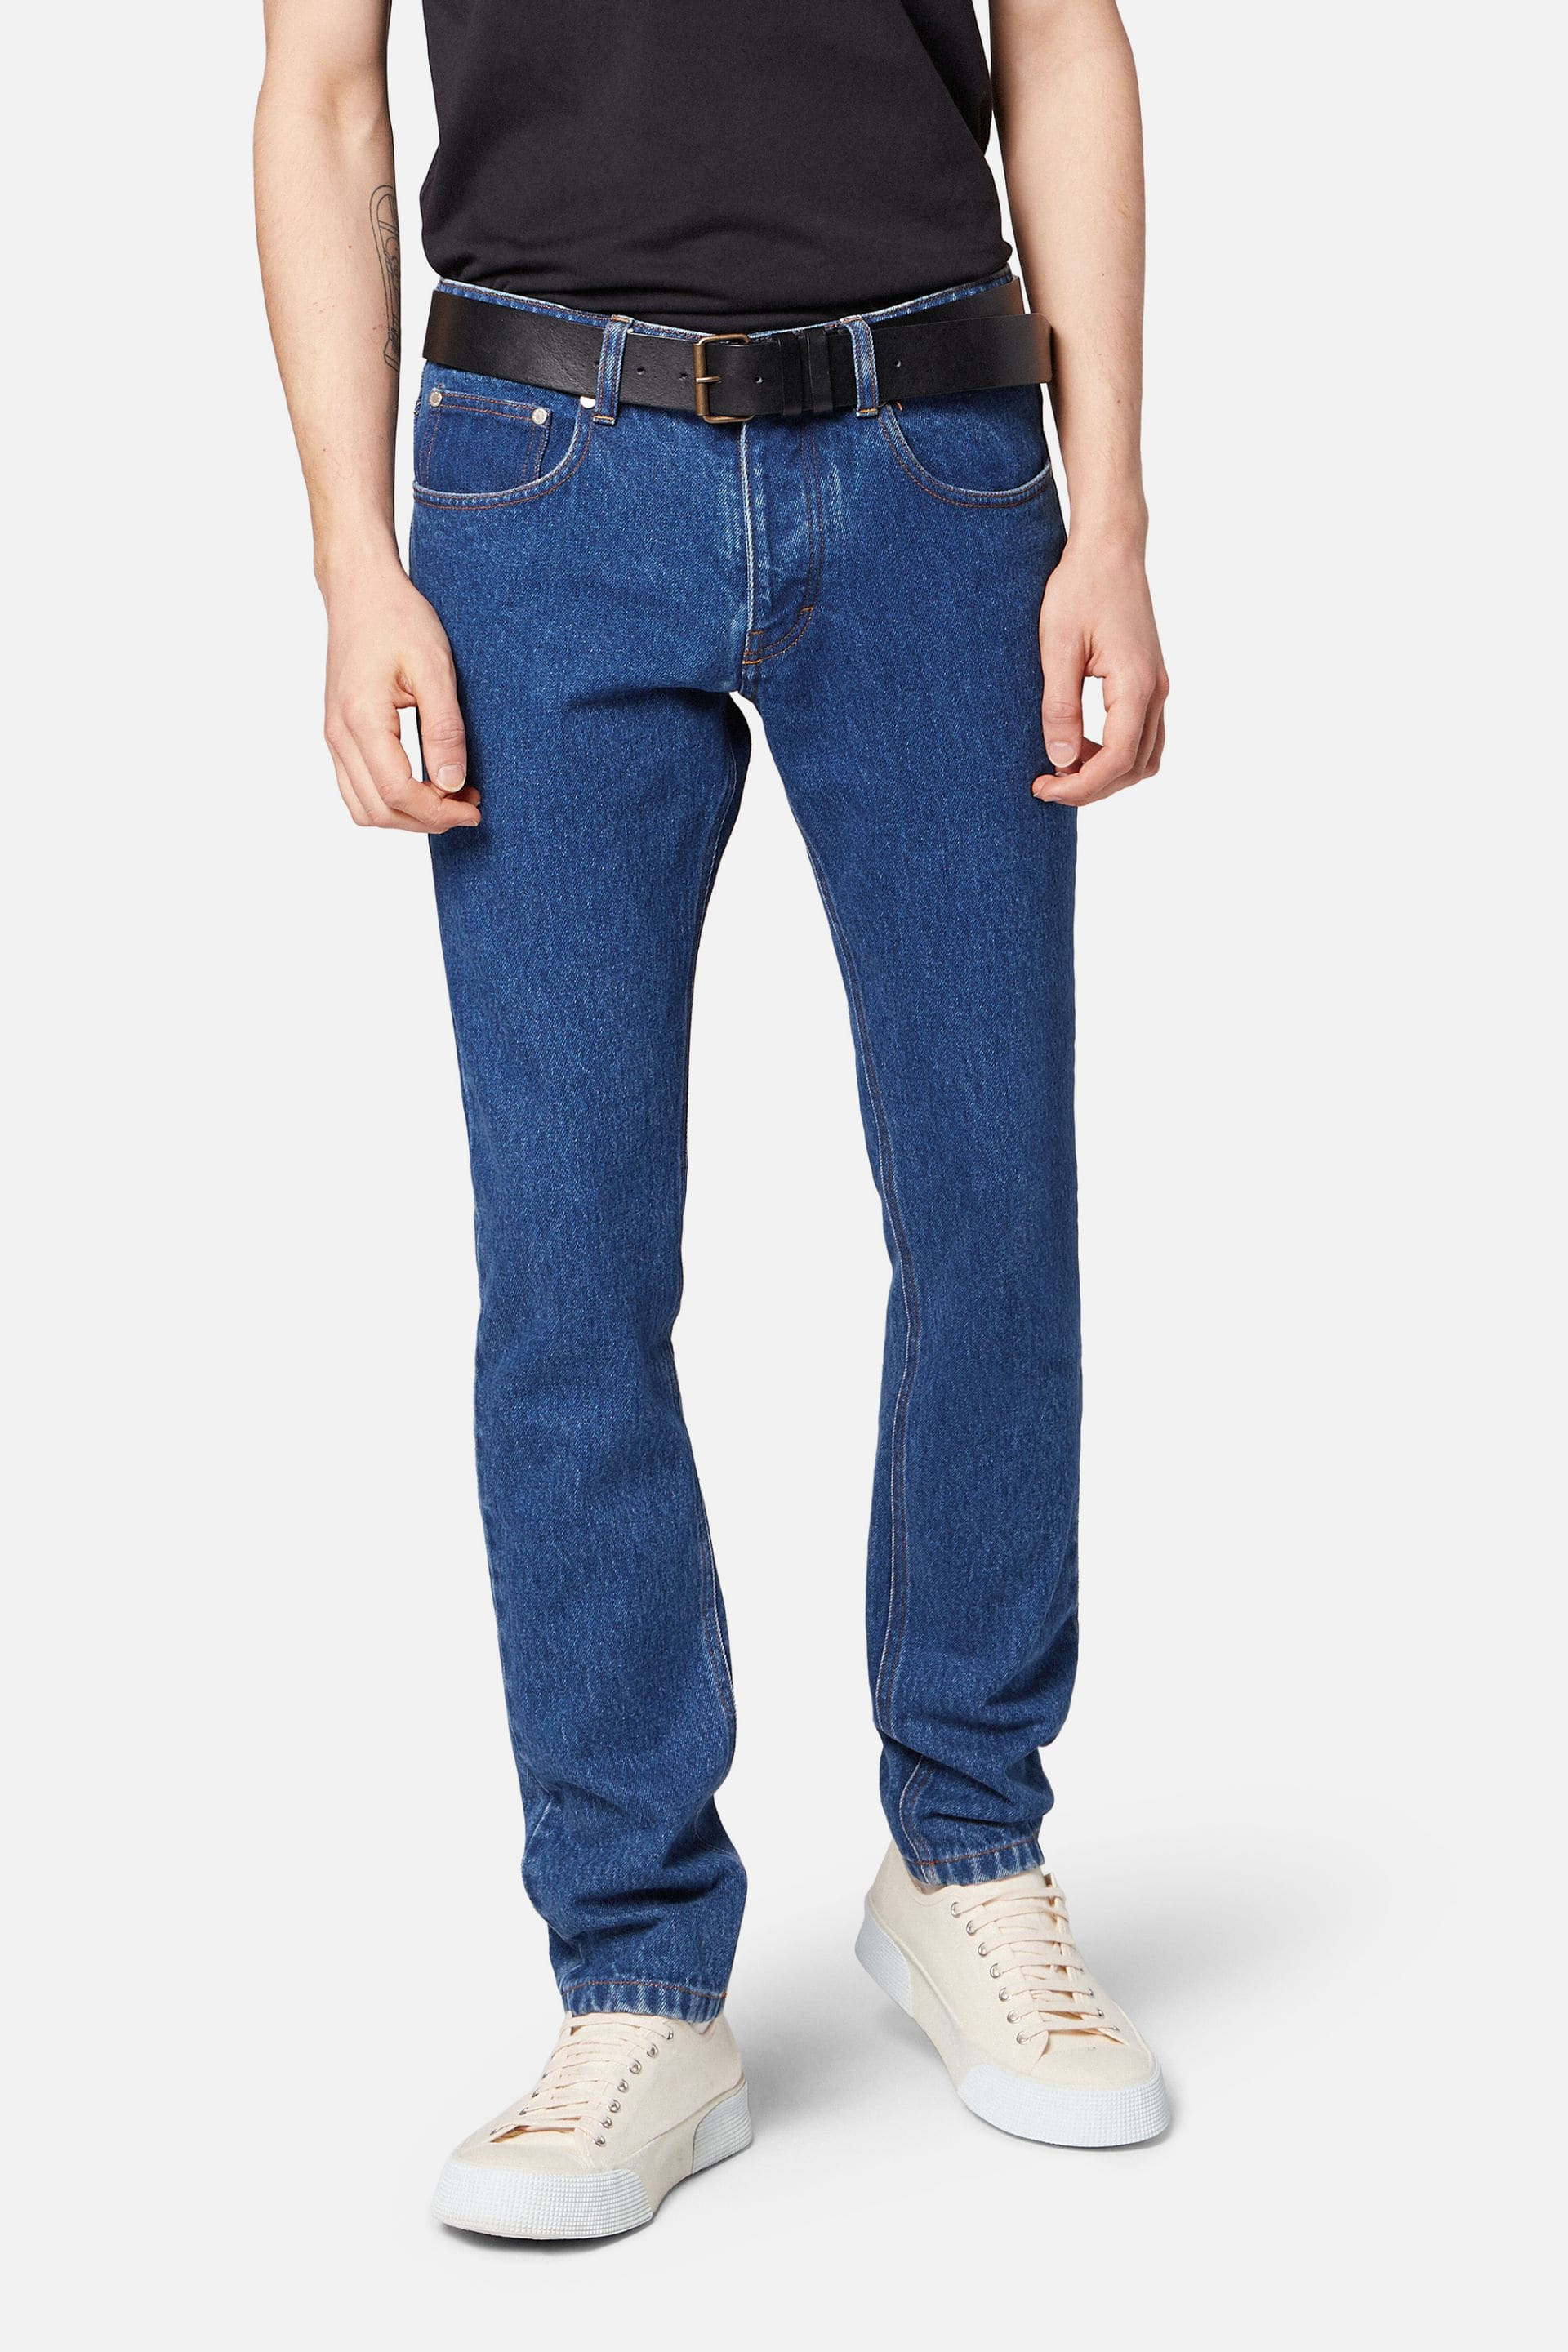 Mens fashion shop stock photo. Image of color, casual - 66690288